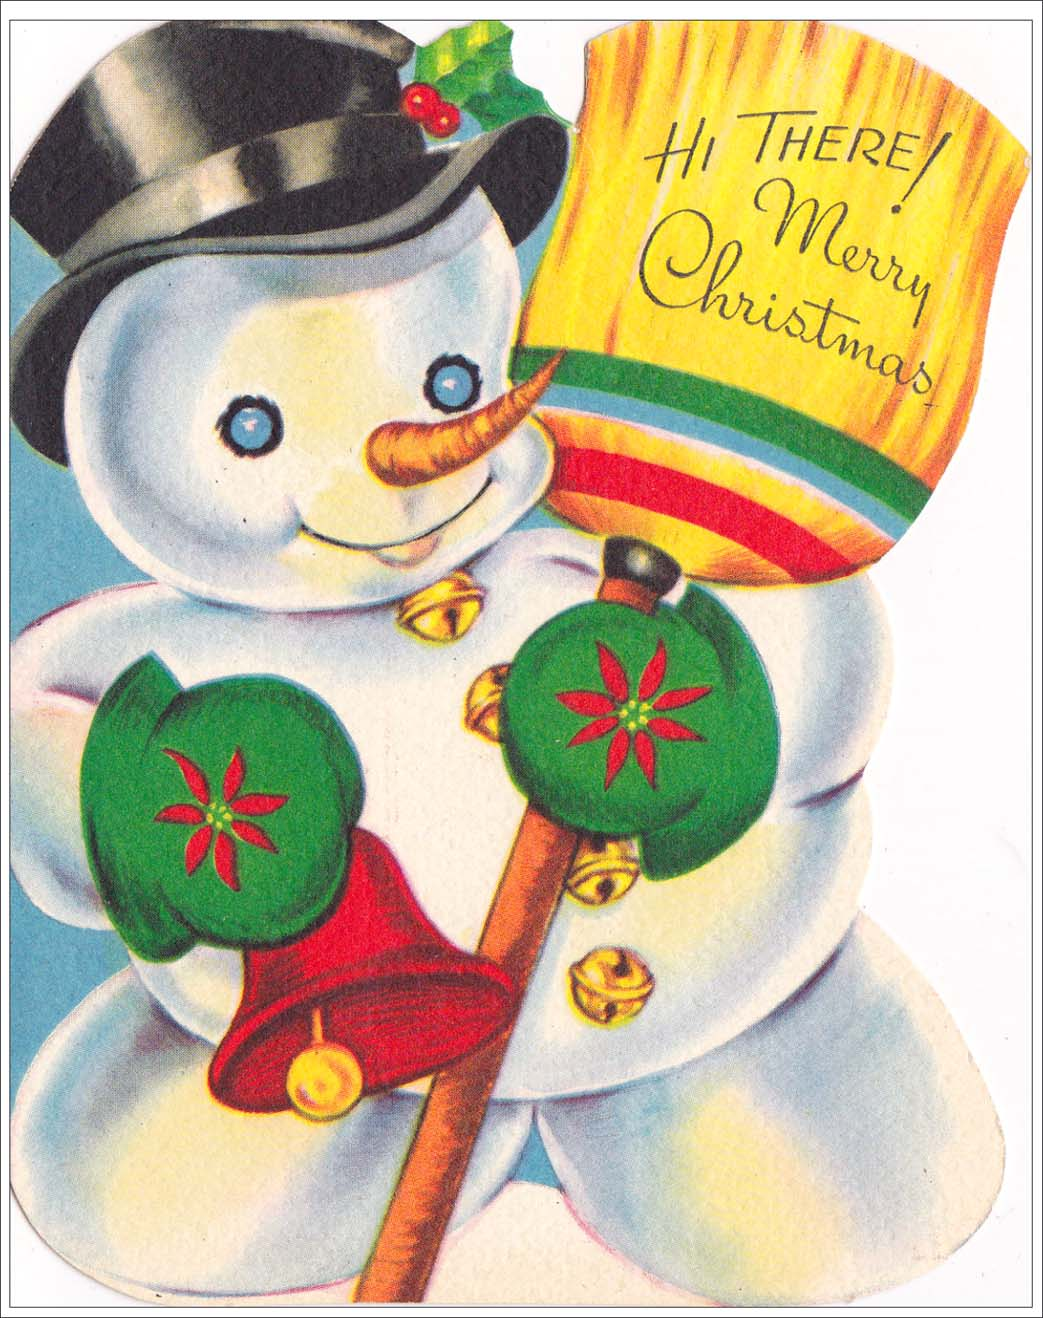 Christmas card showing a happy snow man with a hat and broom with greeting